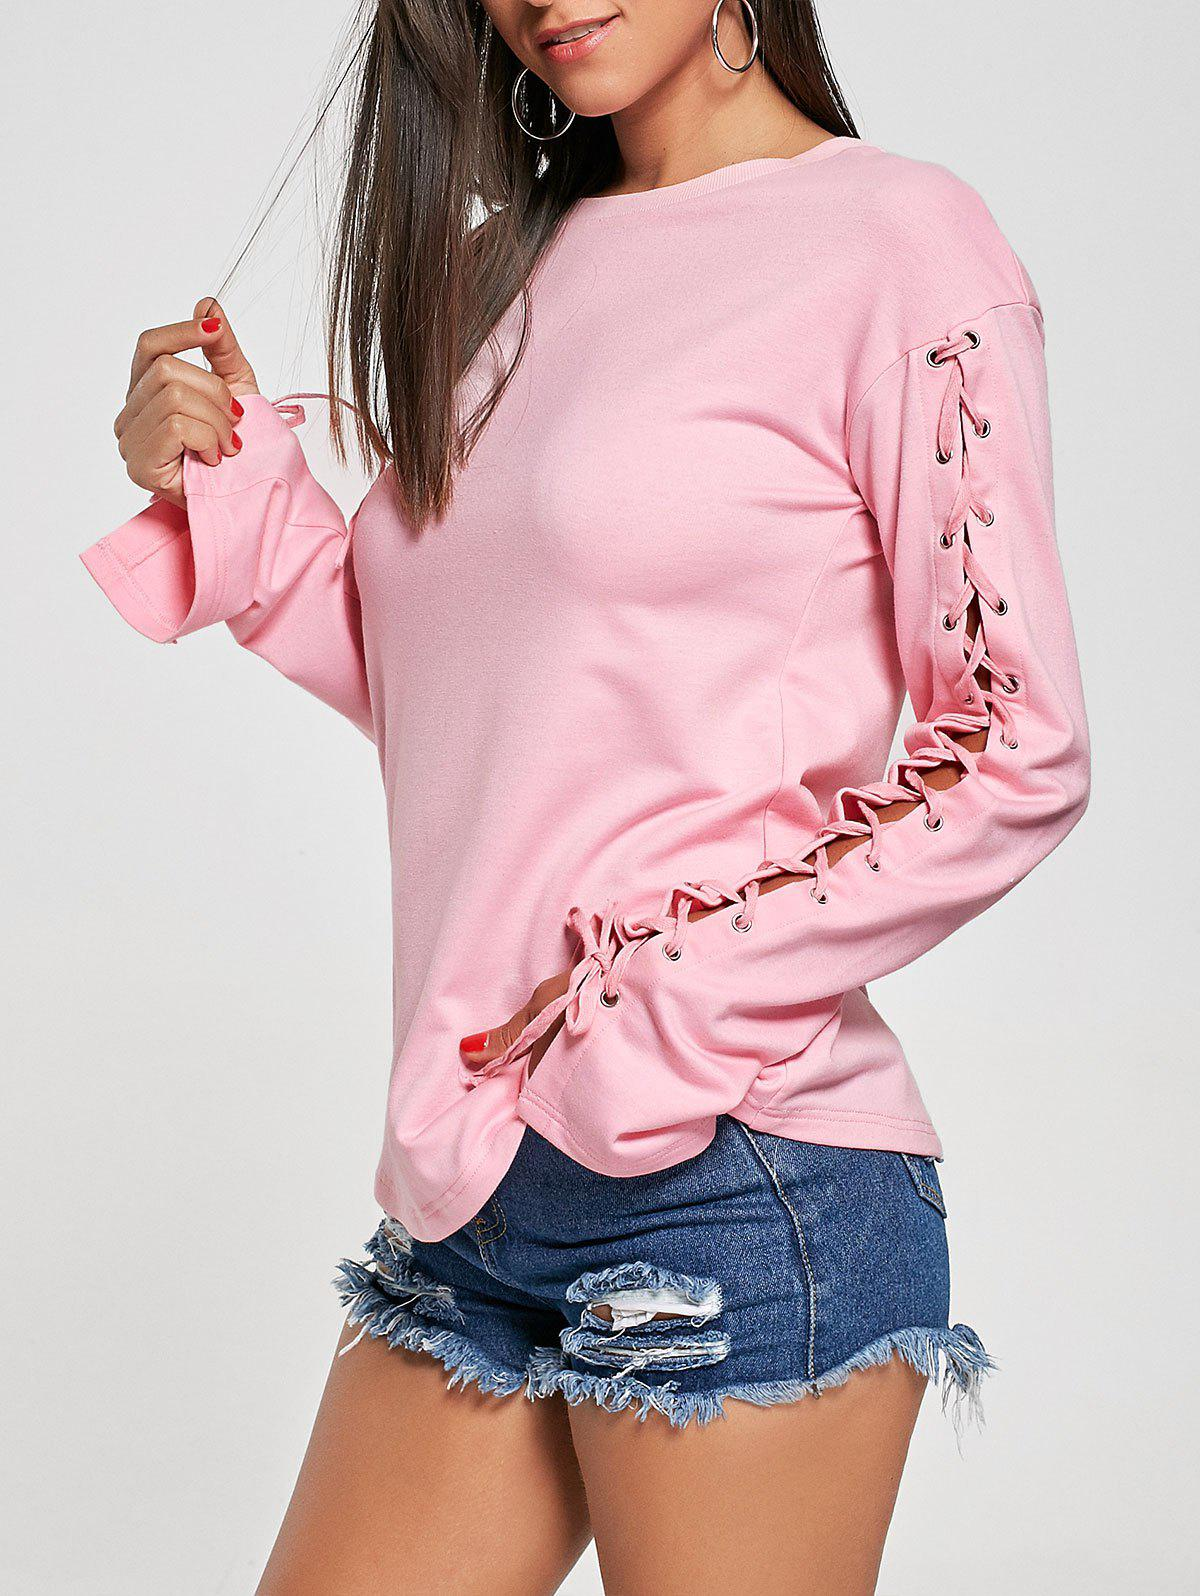 Crew Neck Lace Up TeeWOMEN<br><br>Size: XL; Color: PINK; Material: Cotton,Polyester,Spandex; Shirt Length: Regular; Sleeve Length: Full; Collar: Crew Neck; Style: Fashion; Pattern Type: Solid Color; Season: Fall,Spring; Weight: 0.3800kg; Package Contents: 1 x T-shirt;